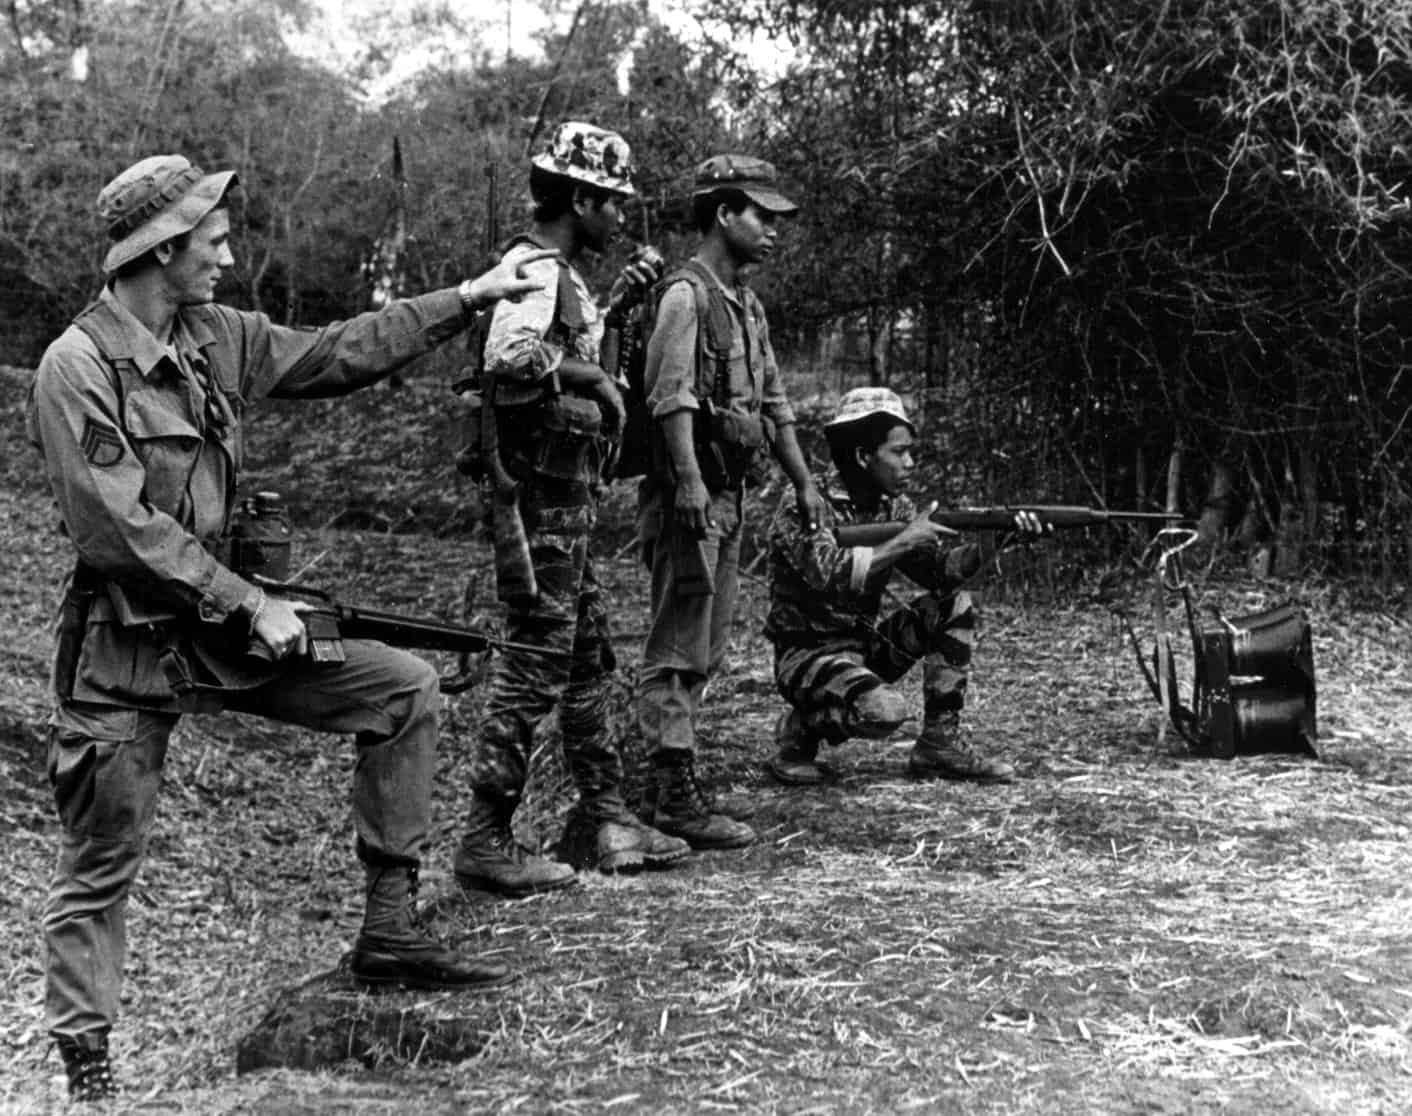 the american experience in vietnam war essay America in vietnam is a book by guenter essay entitled is american guilt justified in the essay he suggests that many americans feels a sense of guilt for having.